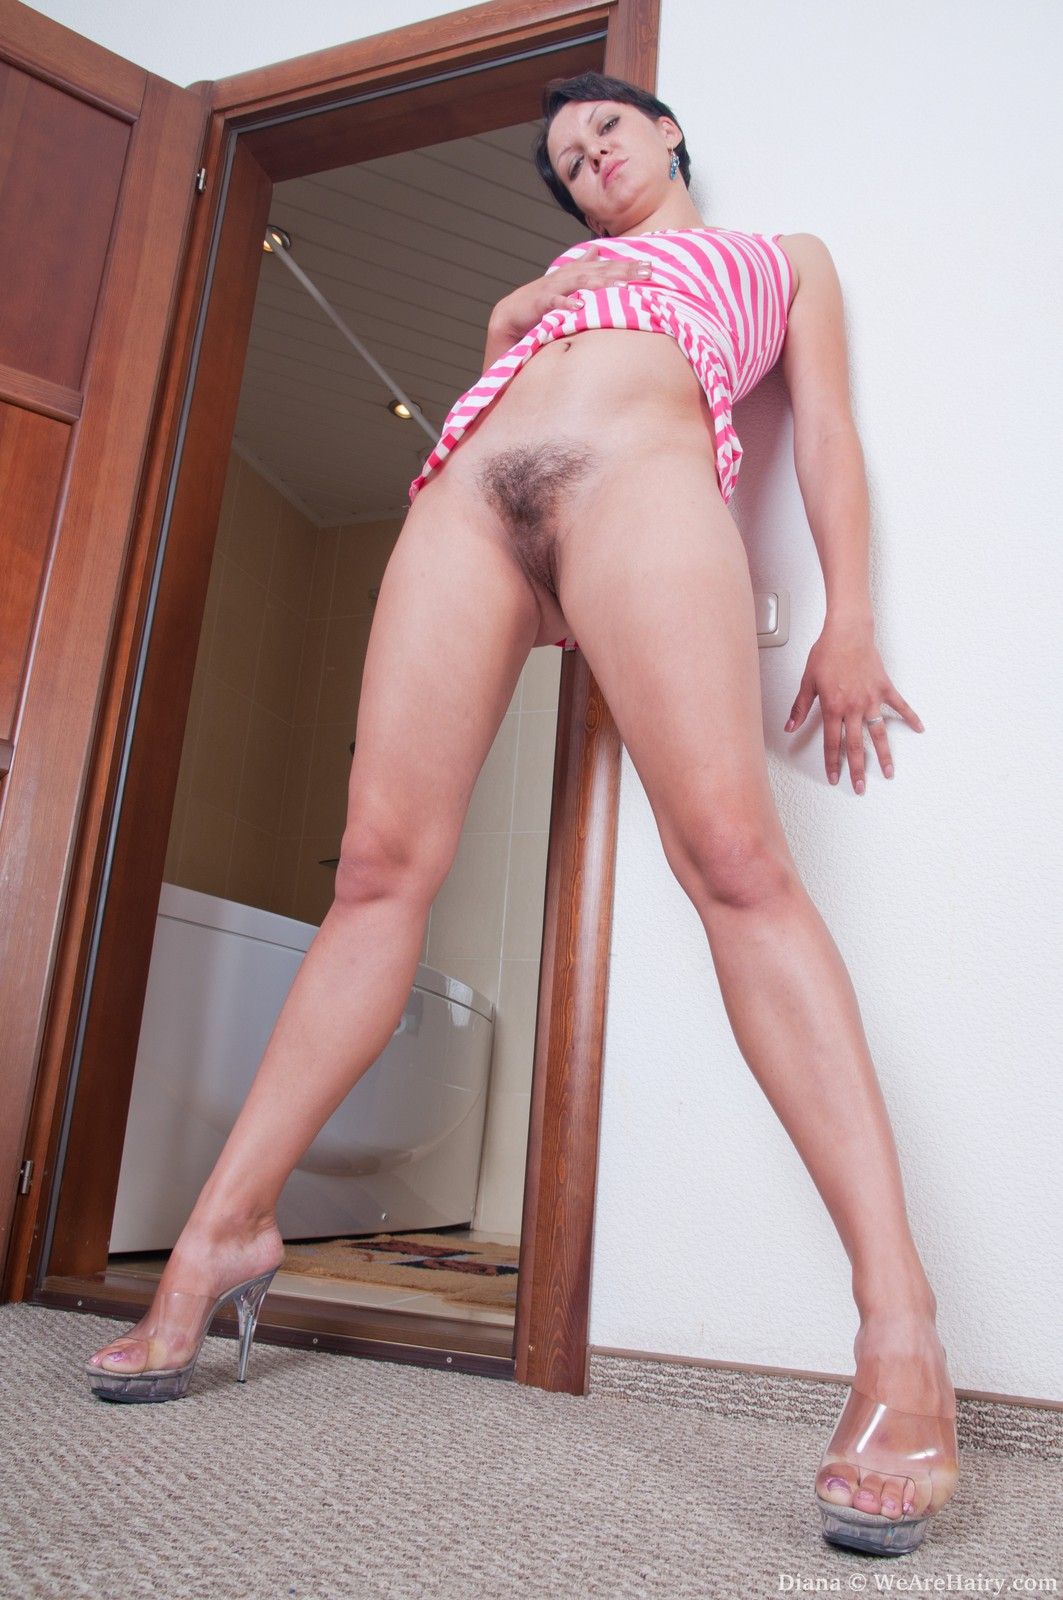 Hairy girl faustina from nicaragua plays with her pussy hair 2